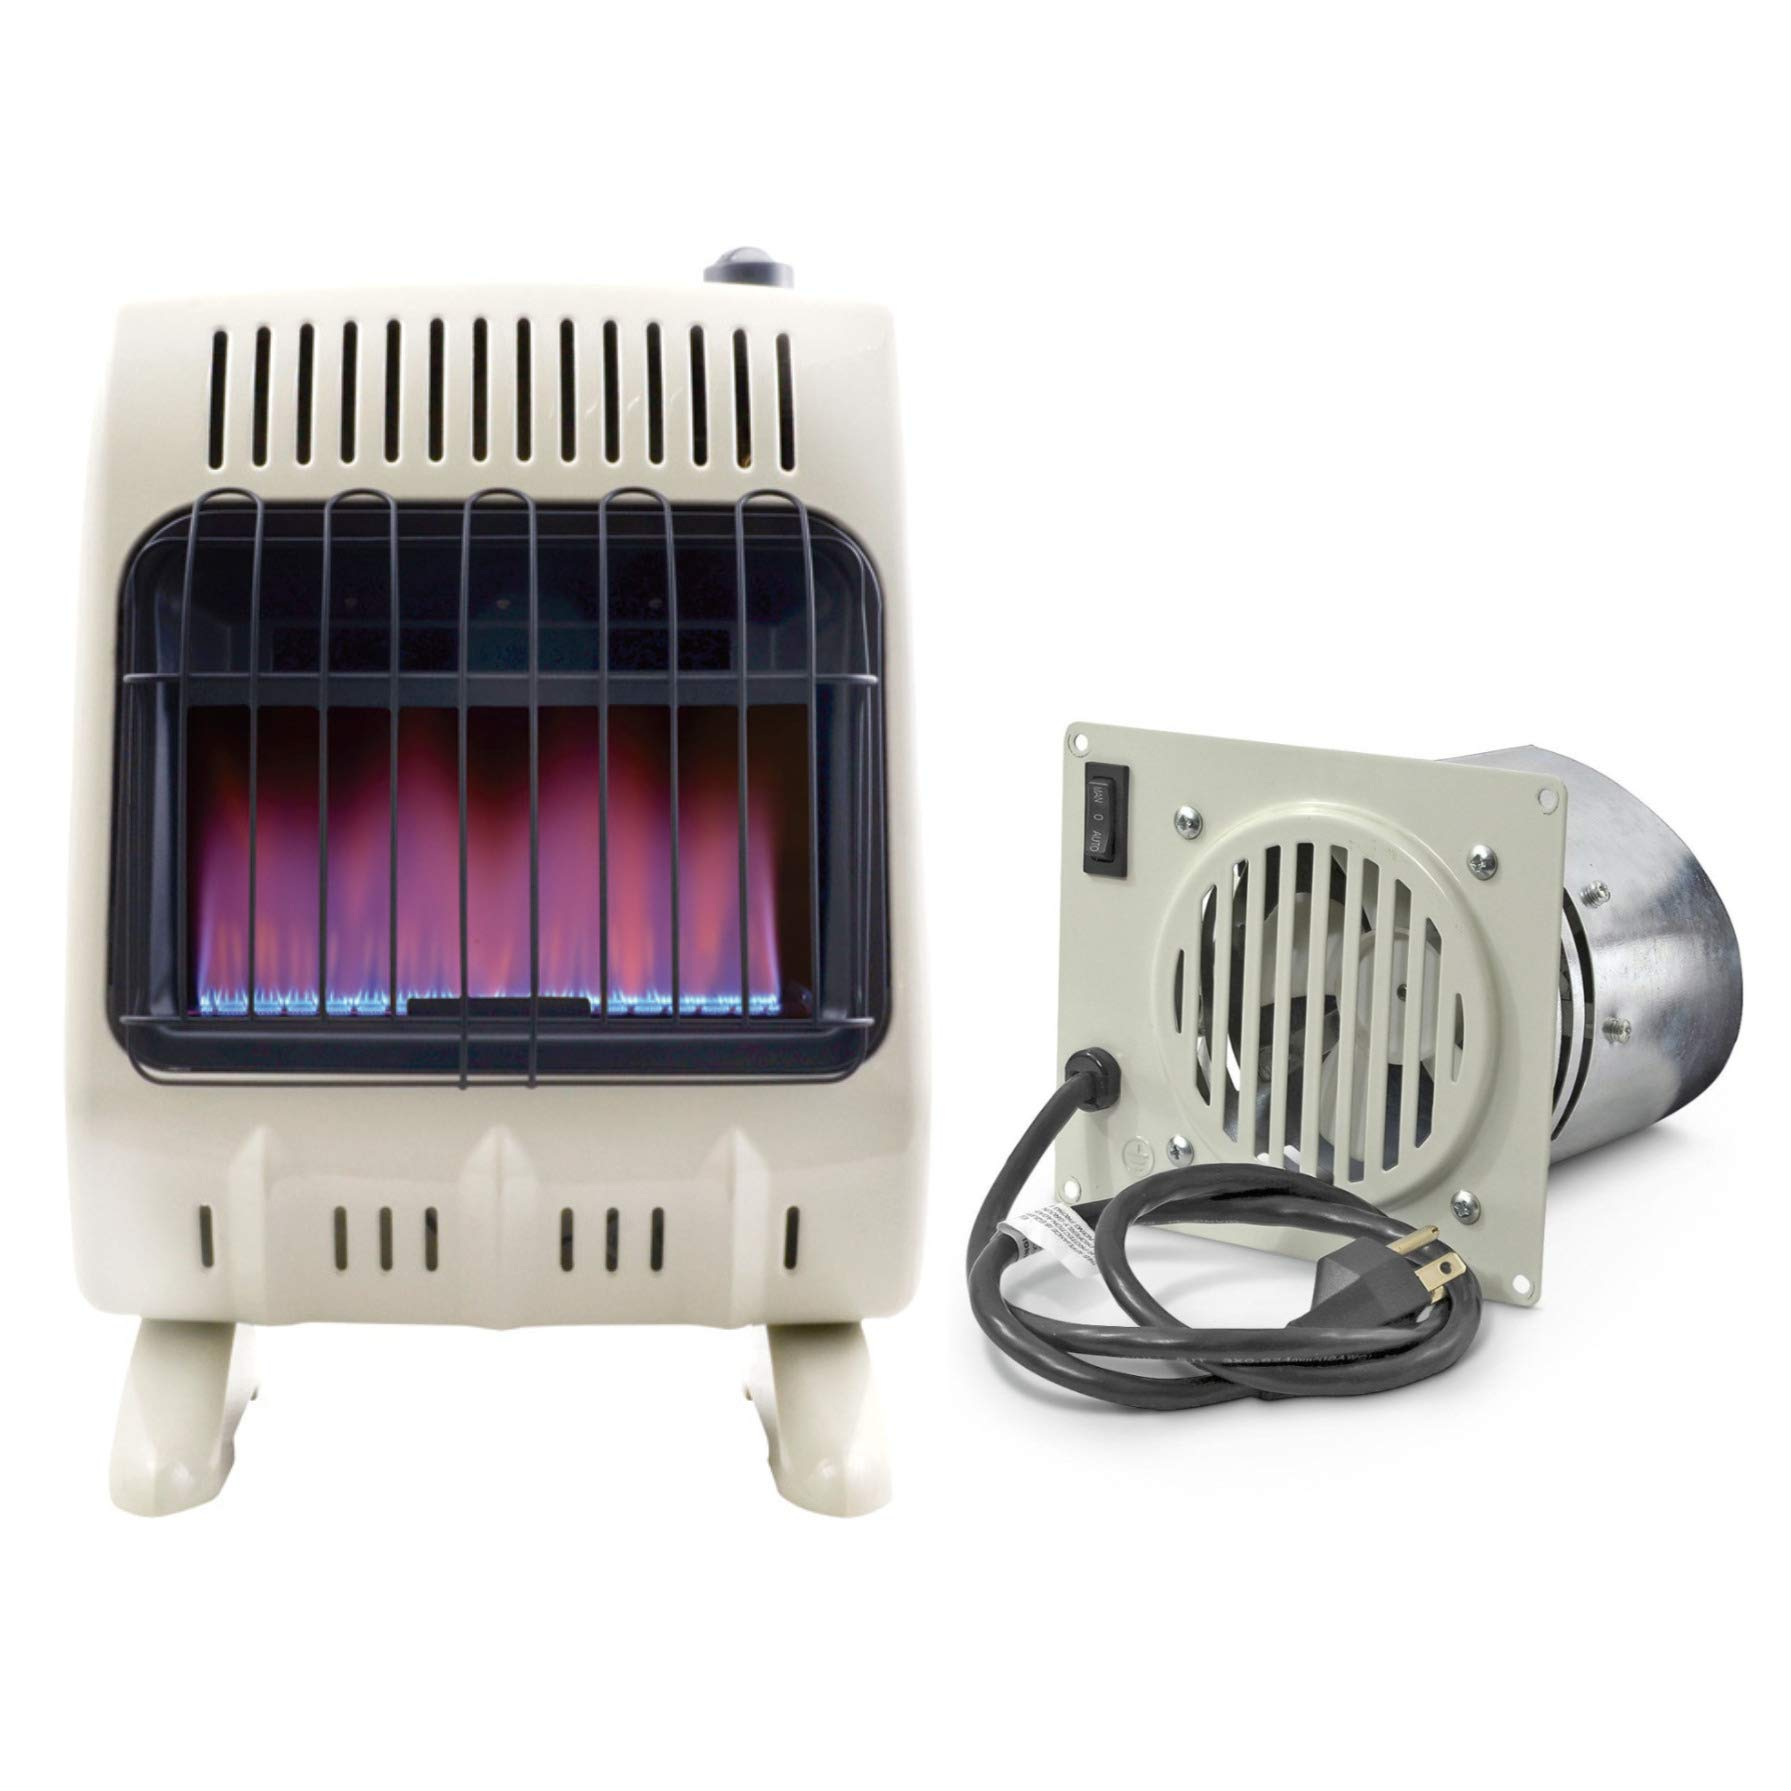 Mr. Heater 20K Vent-Free Blue Flame Natural Gas Heater (20,000 BTU/Hr.) and Blower Fan Kit for Even Heat Distribution by Mr. Heater